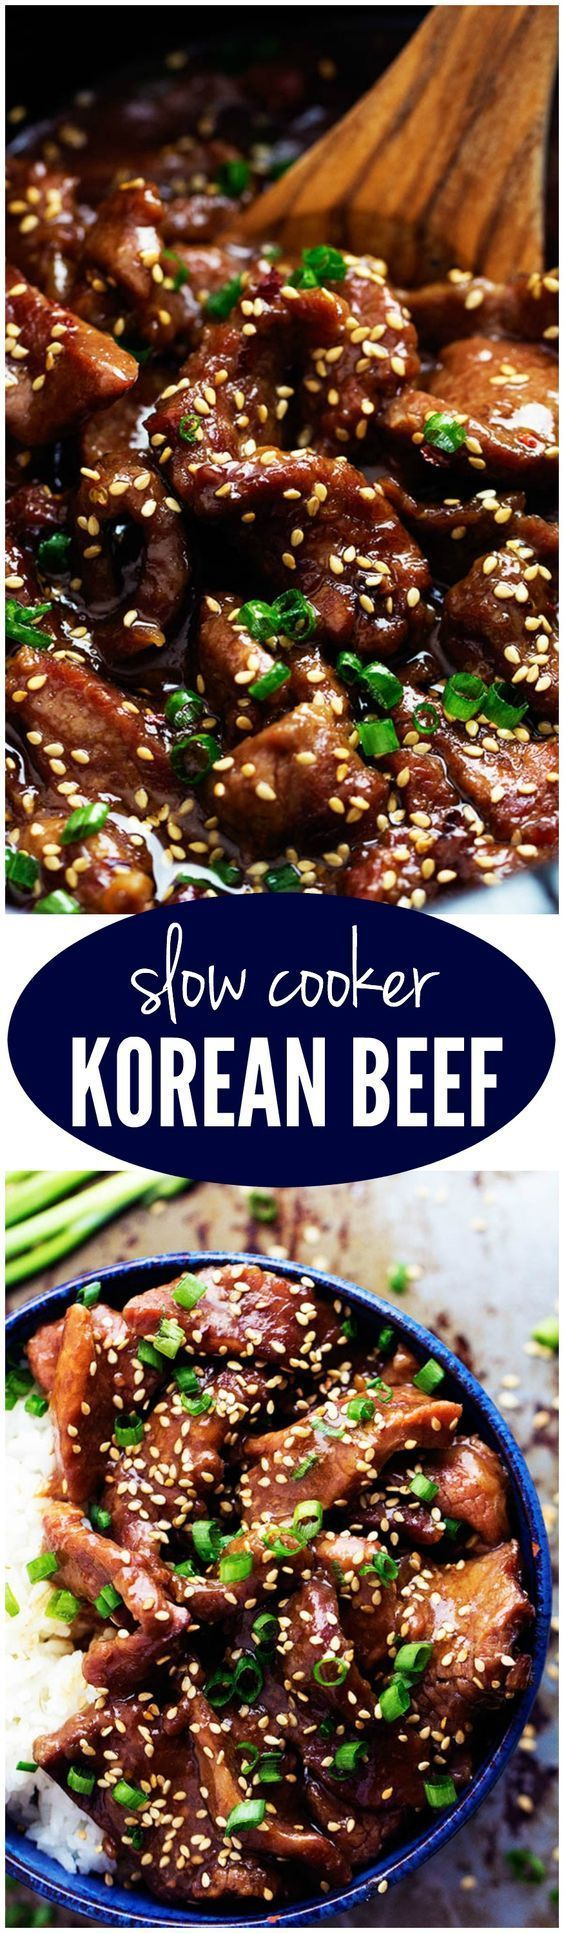 Amazing and flavorful beef that slow cooks to tender melt in your mouth perfection! This will be one of the best meals that you will make!